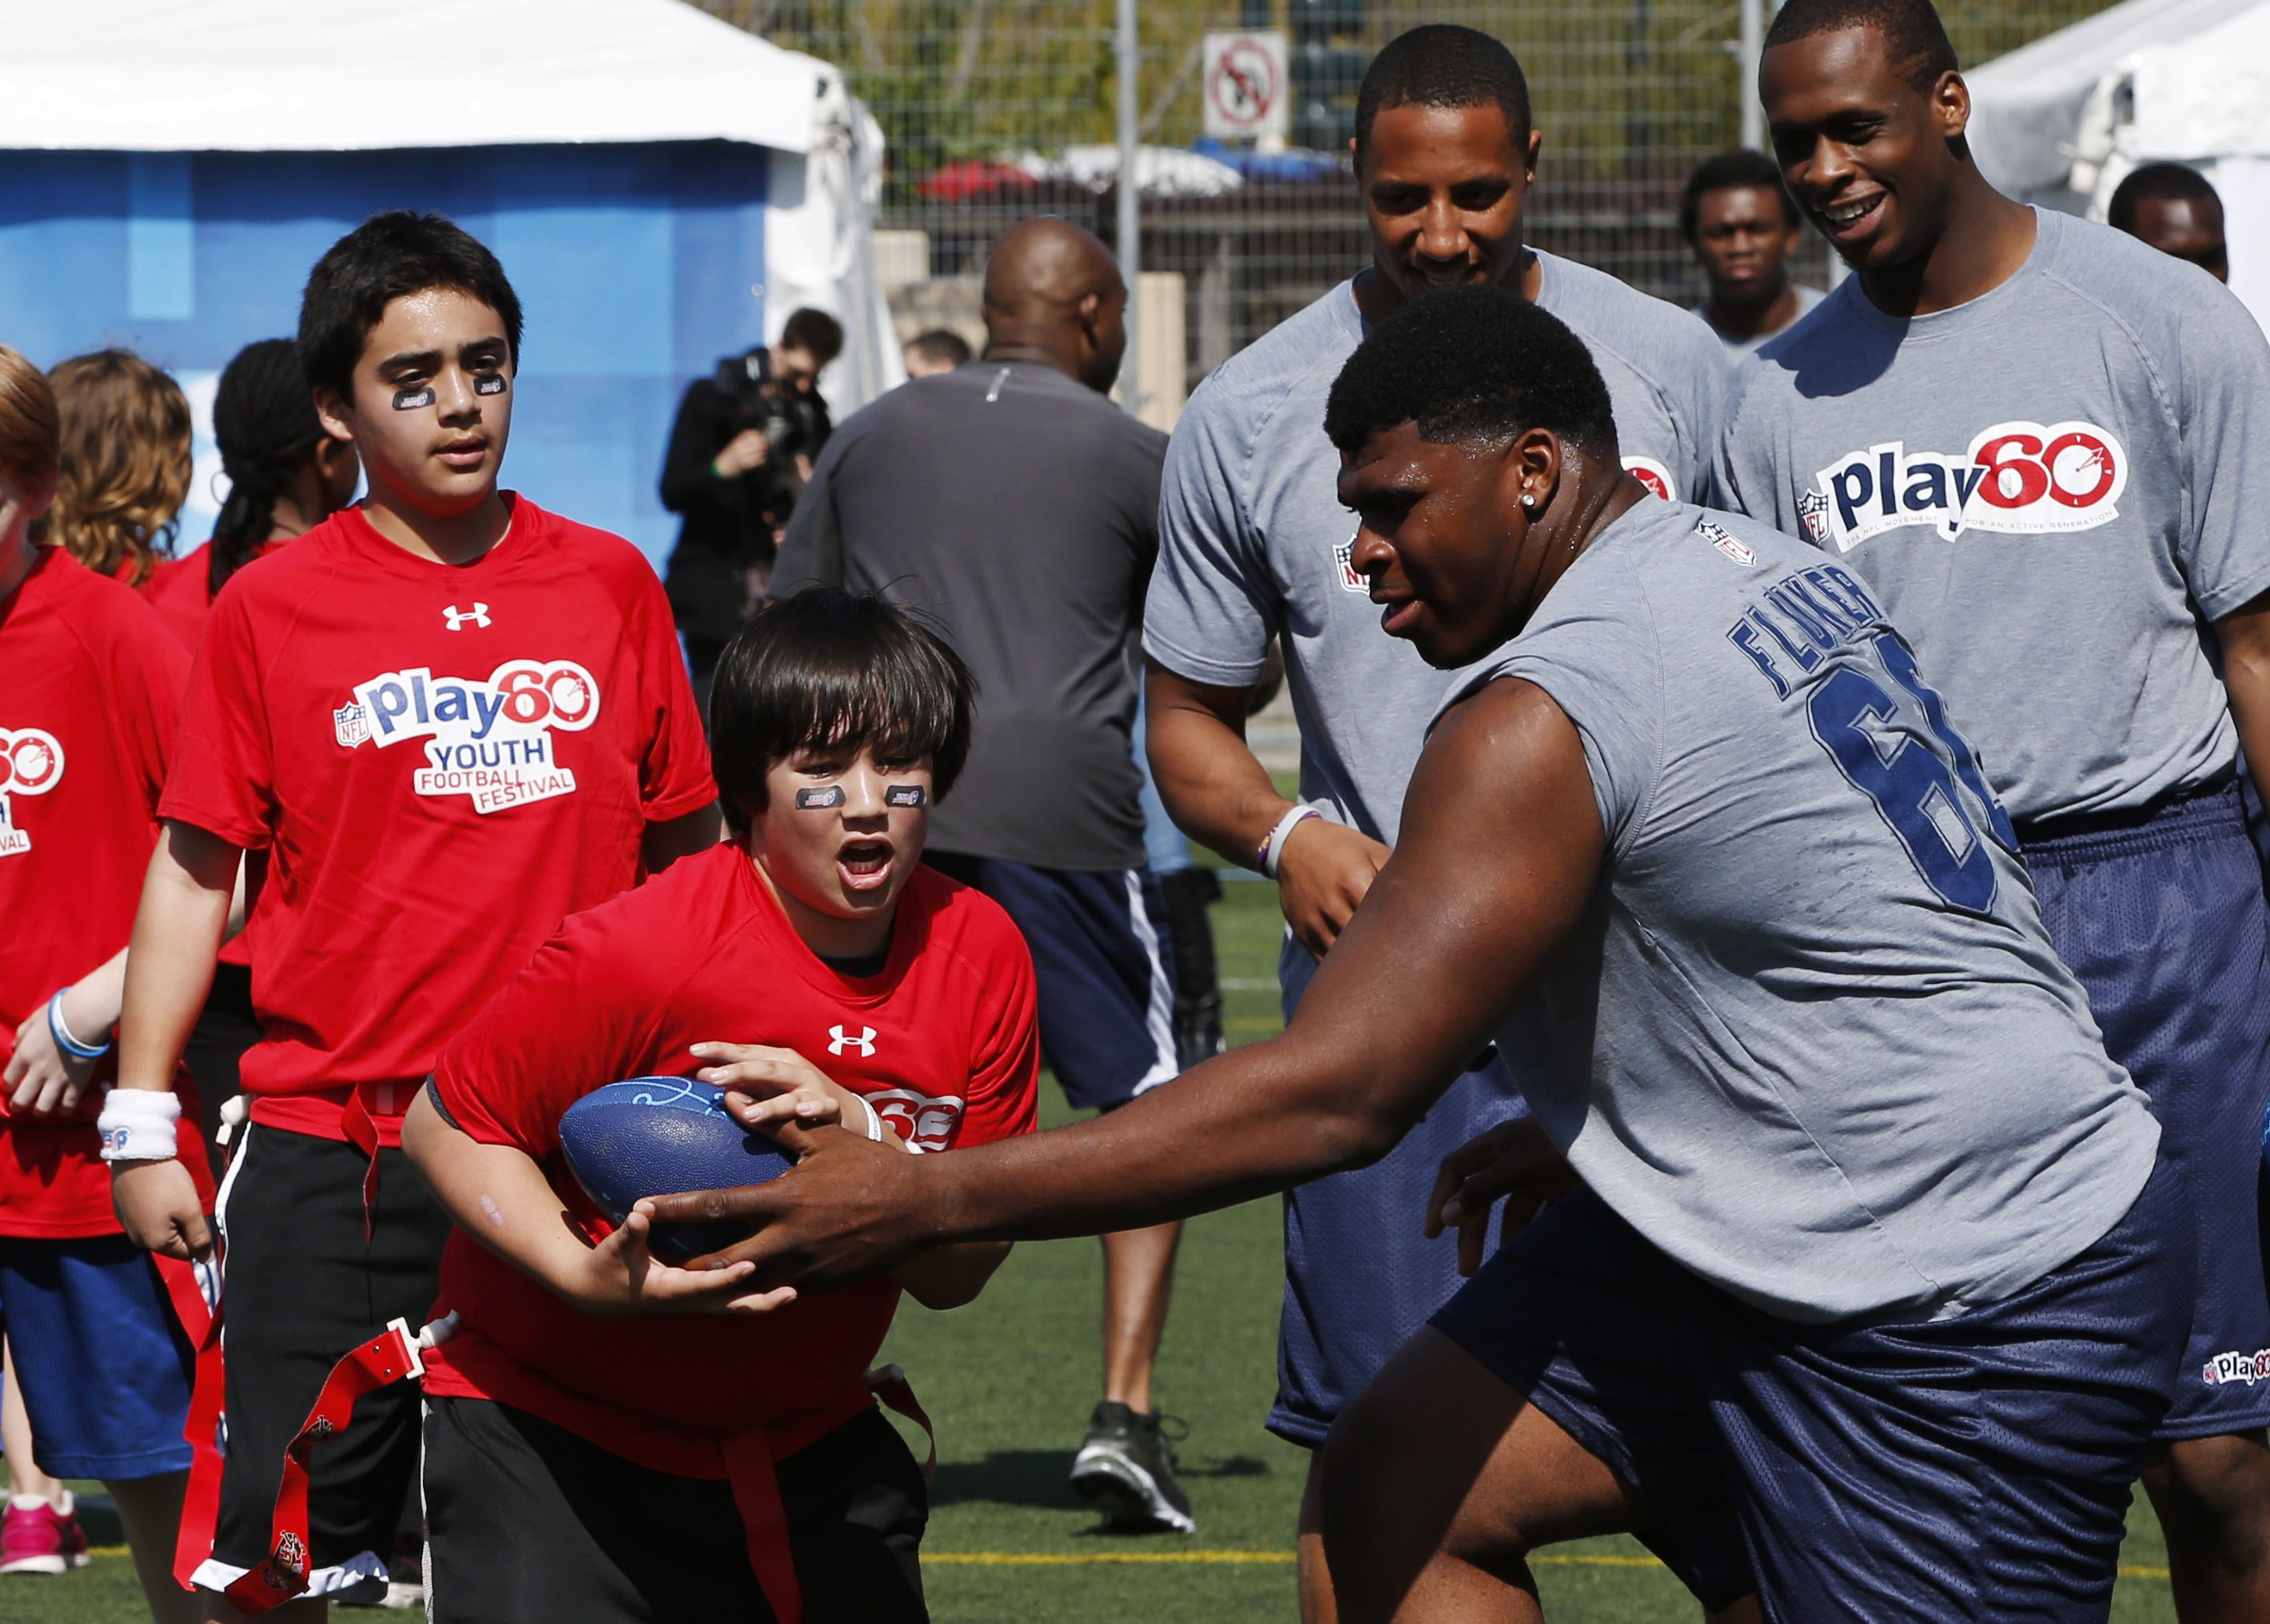 D.J. Fluker hands off to a boy as he takes part in an NFL Play 60 youth clinic. (Reuters)